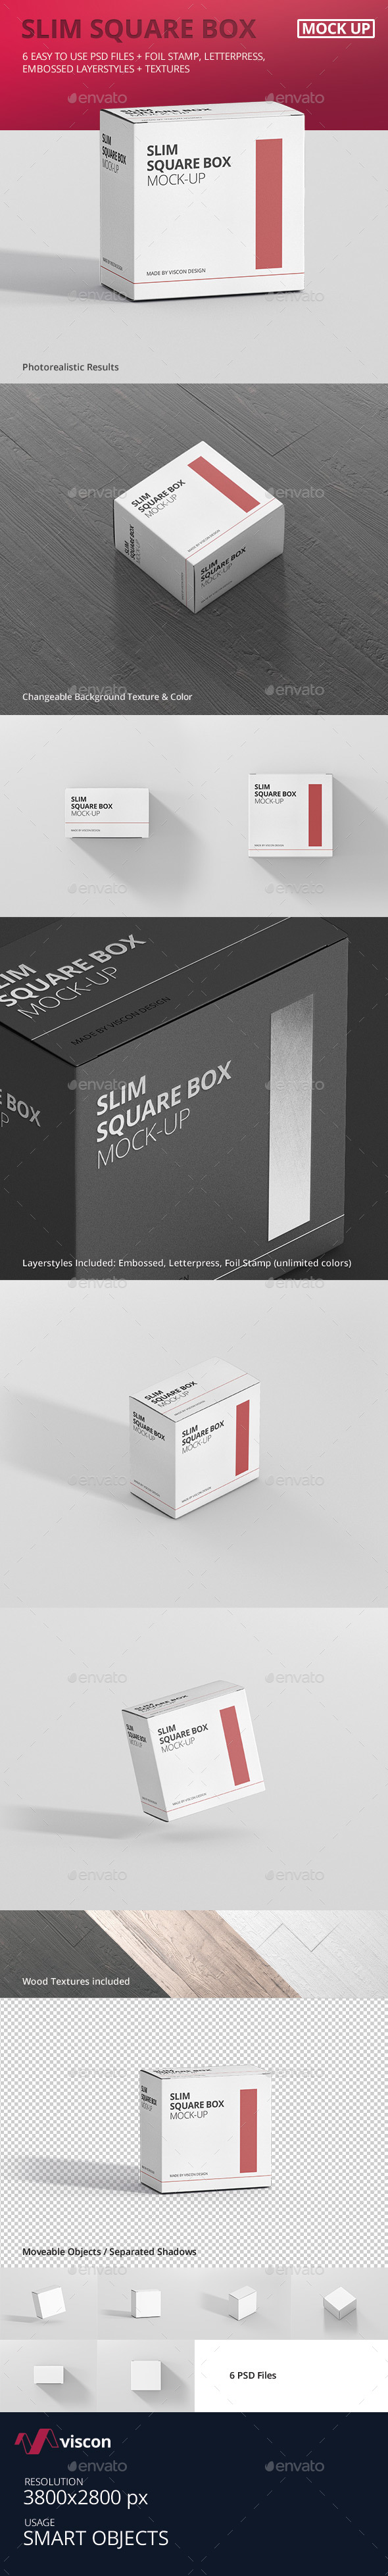 Package Box Mock-Up - Slim Square